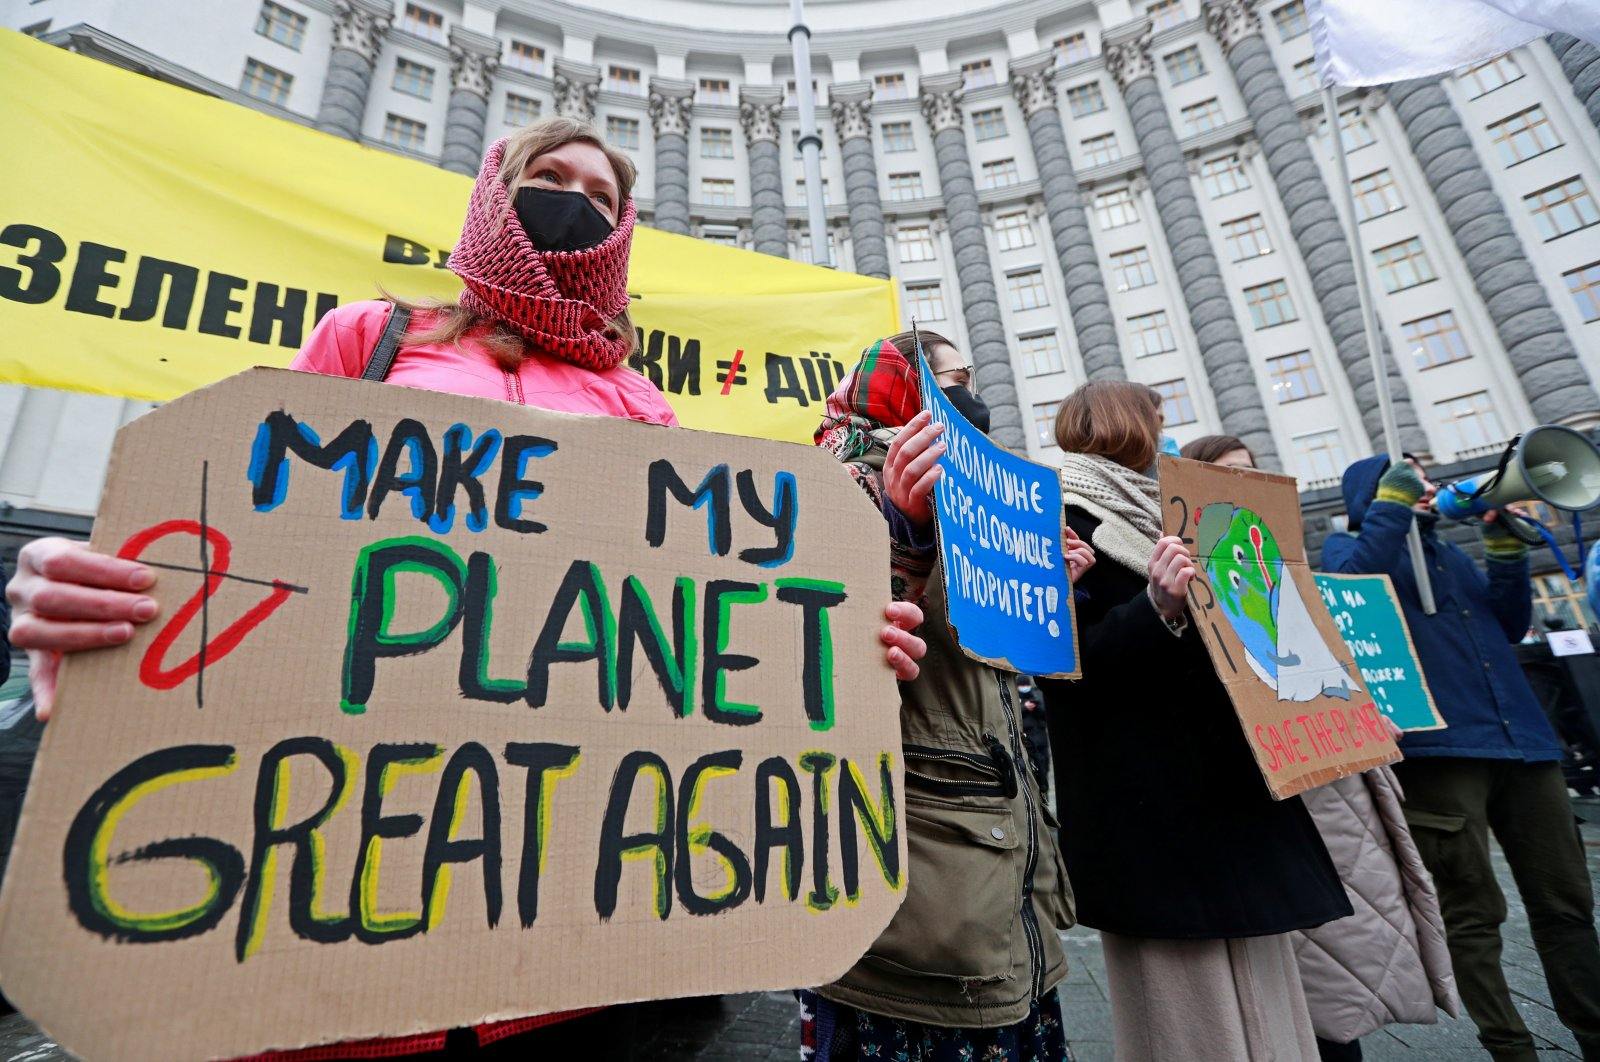 Ukrainian activists take part in a rally demanding action on climate change in Kyiv, Ukraine, March 19, 2021. (Reuters Photo)